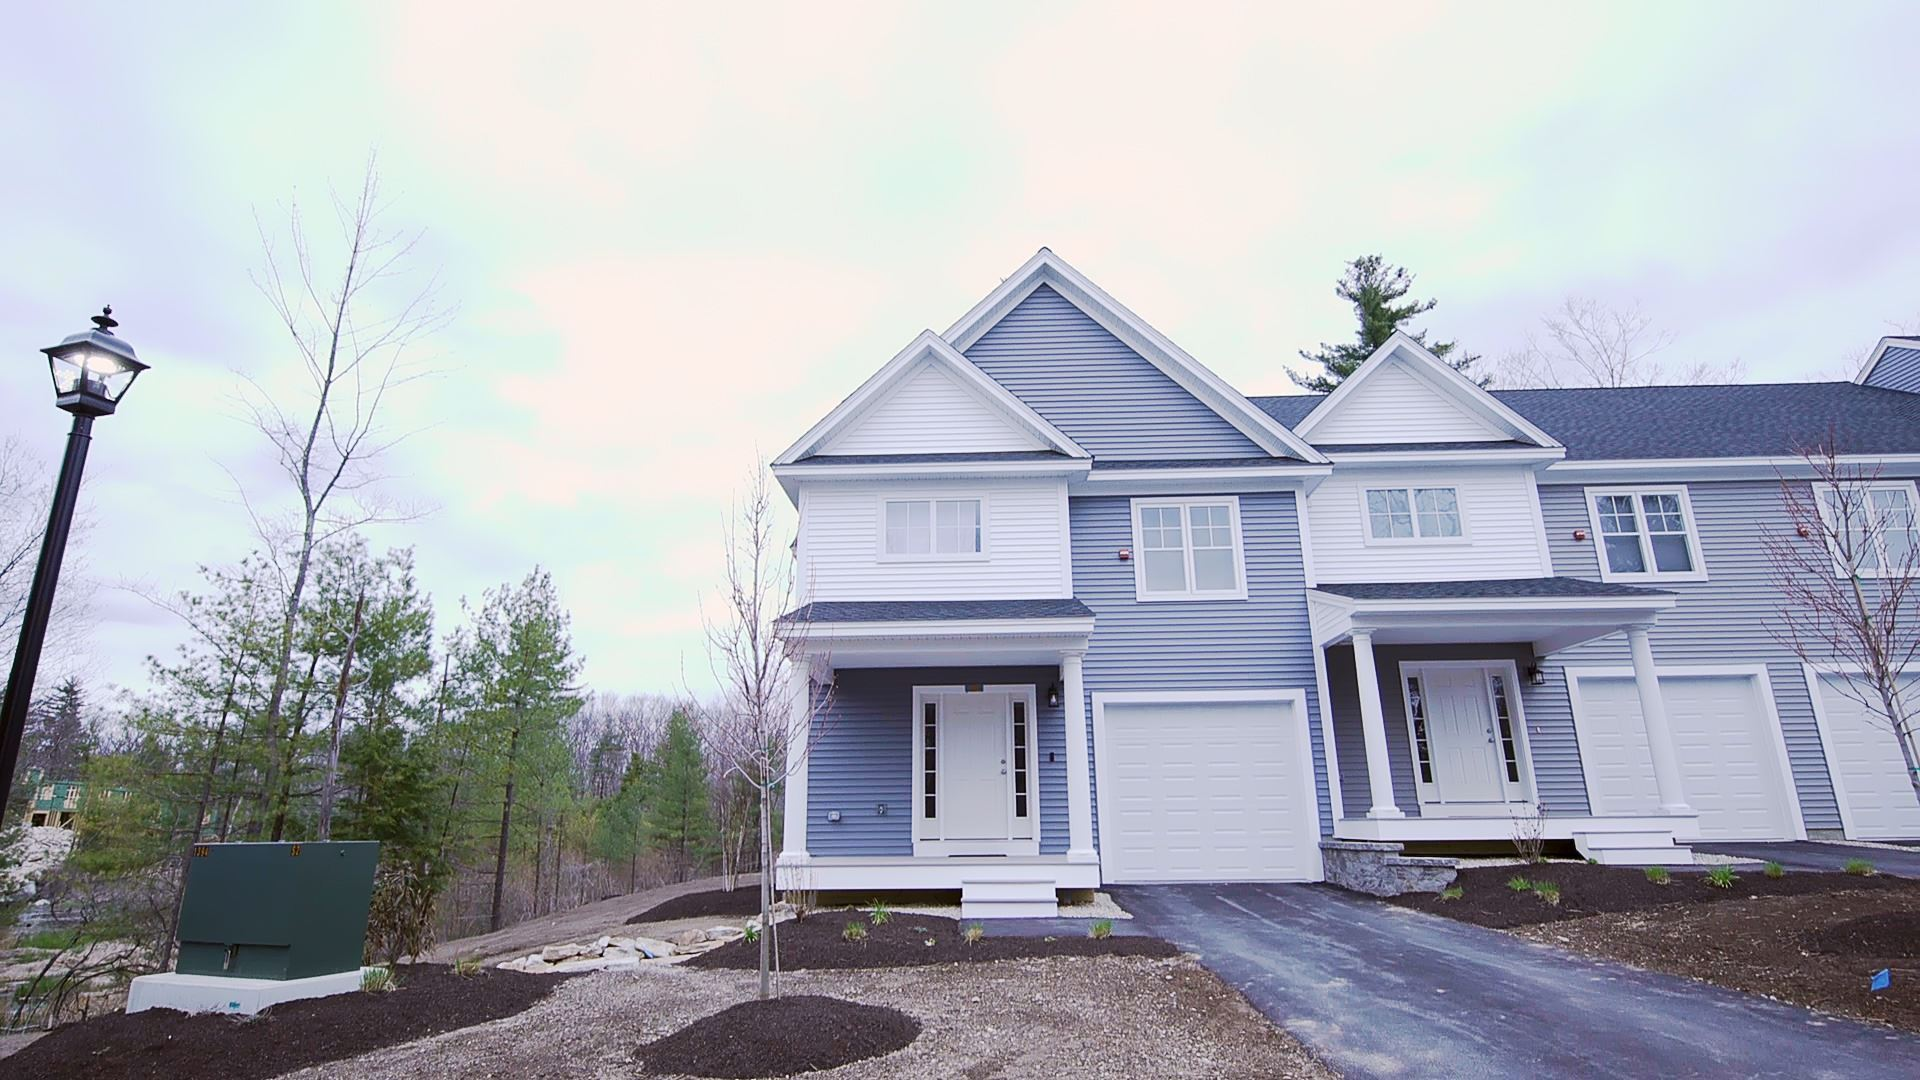 230 Knollwood Way, Manchester, NH 03102 - #: 4804925